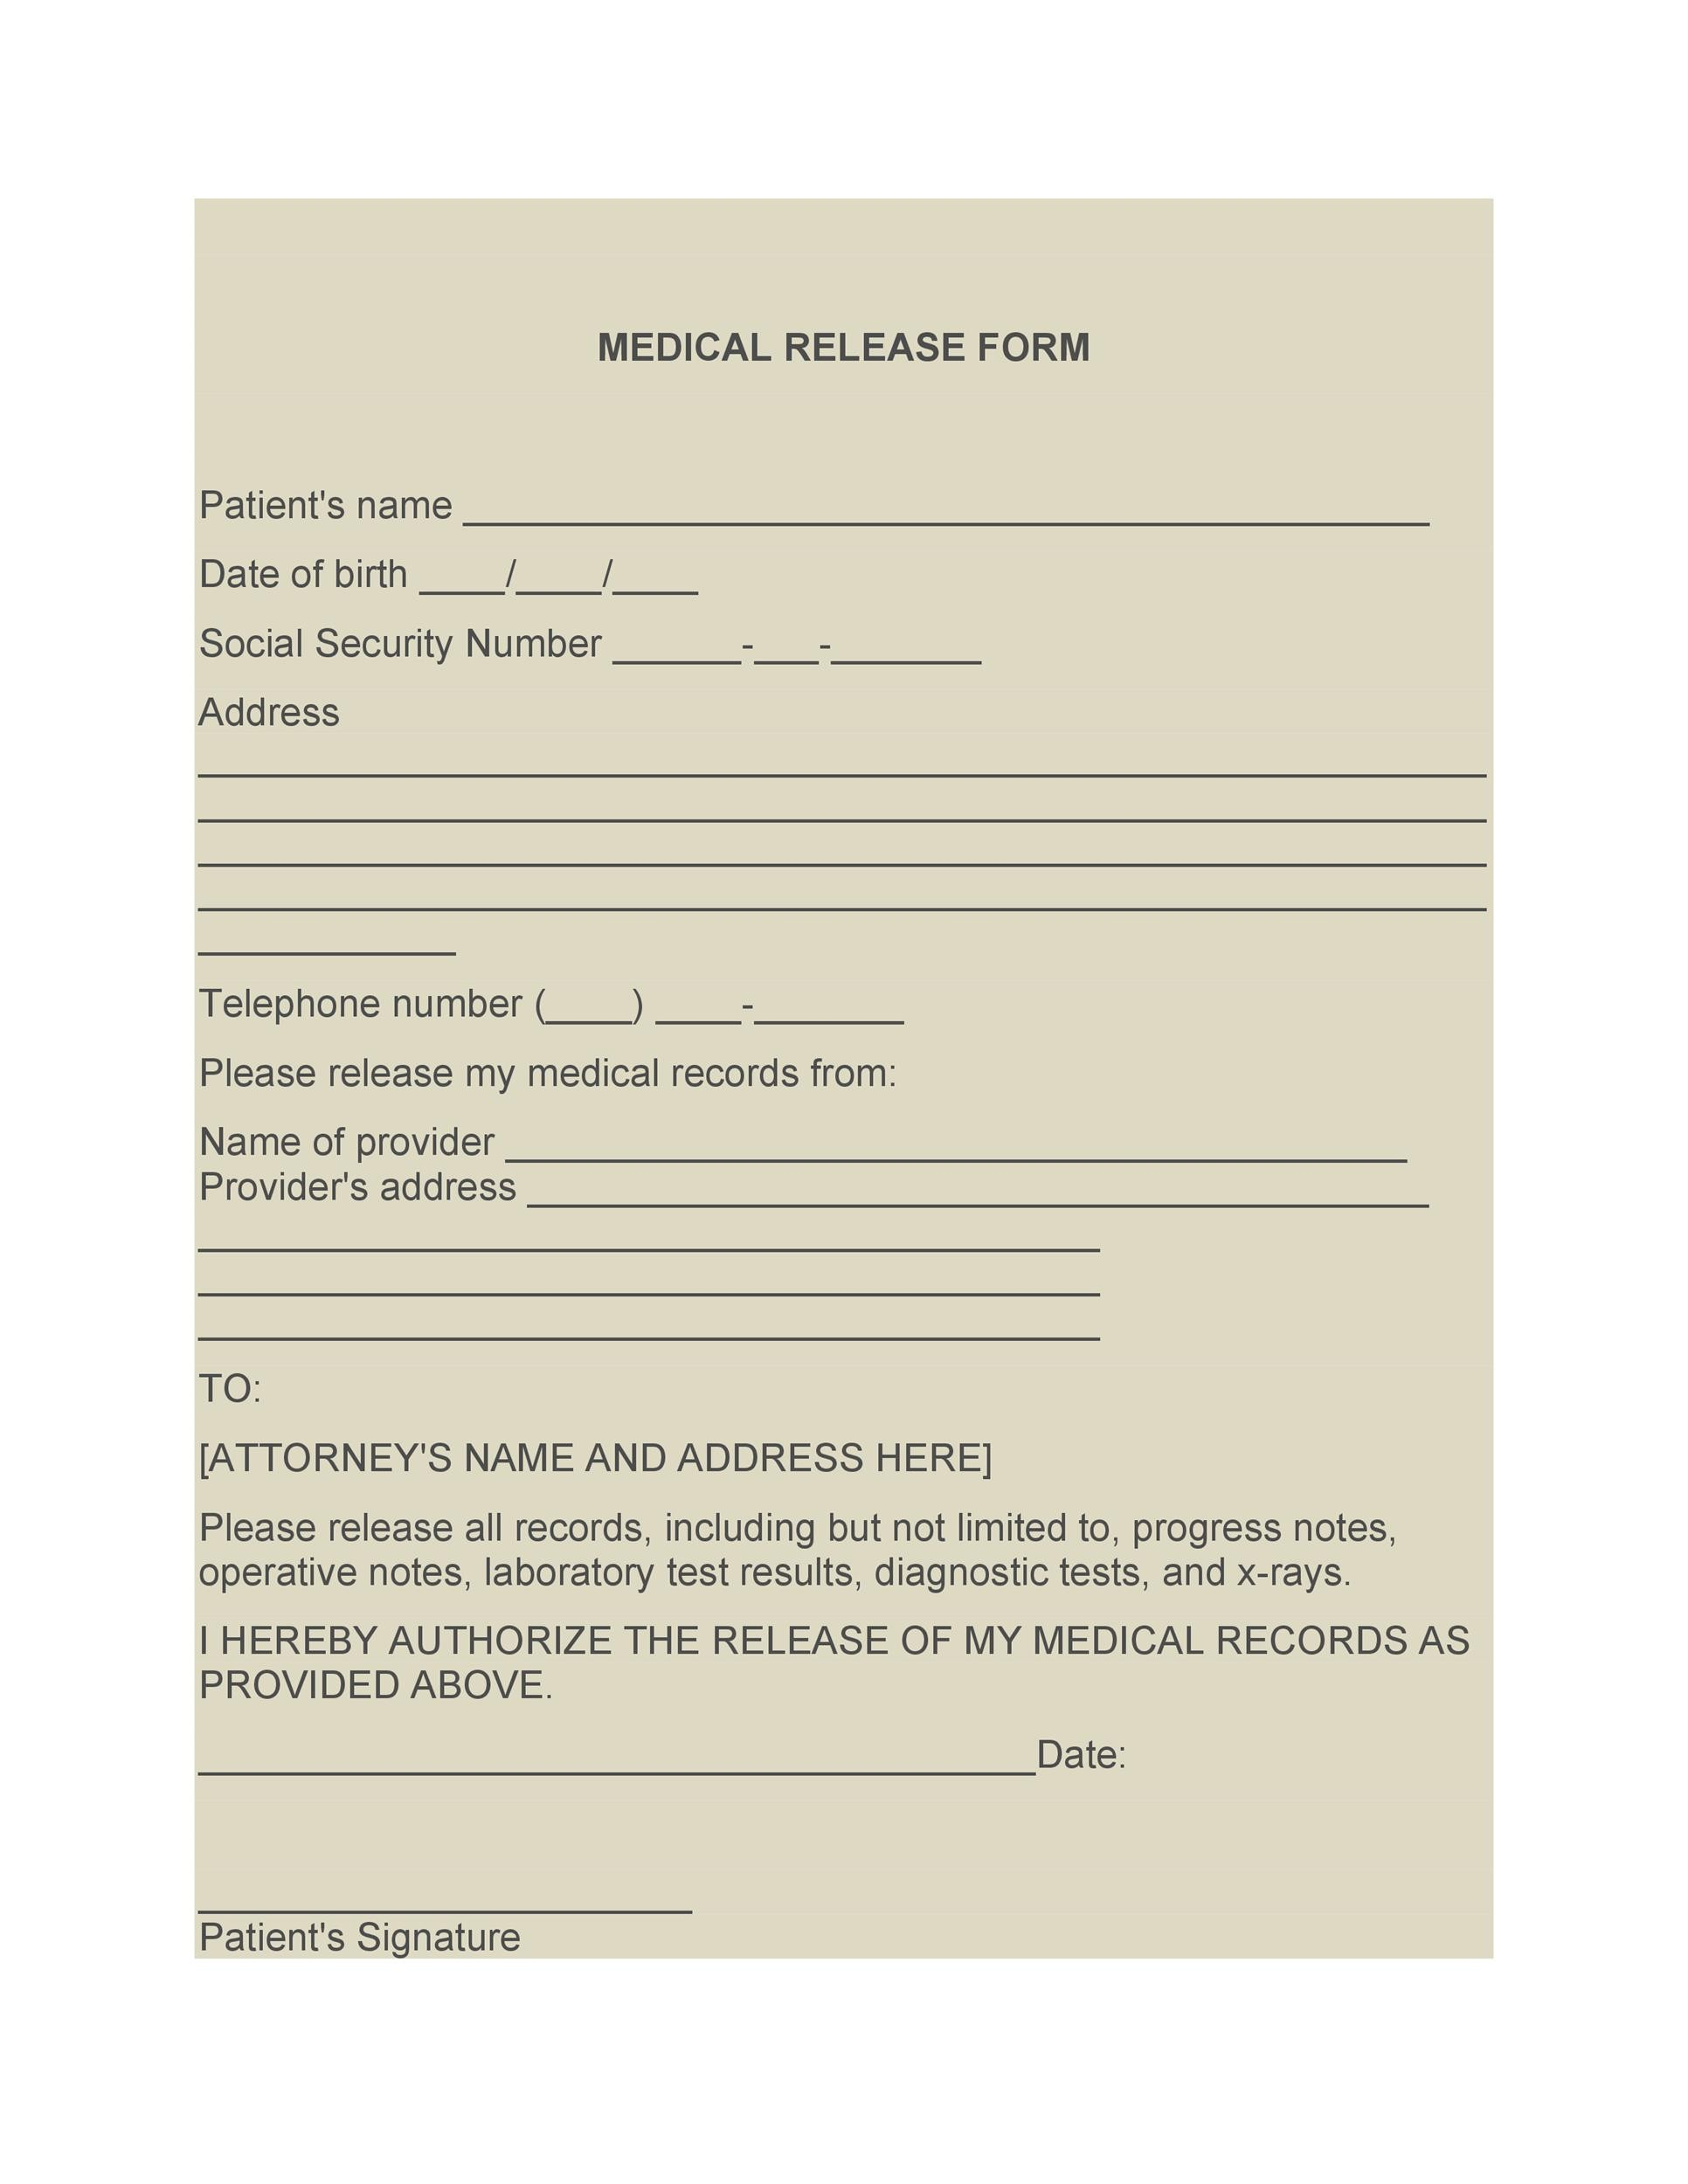 Printable Medical Release Form 02